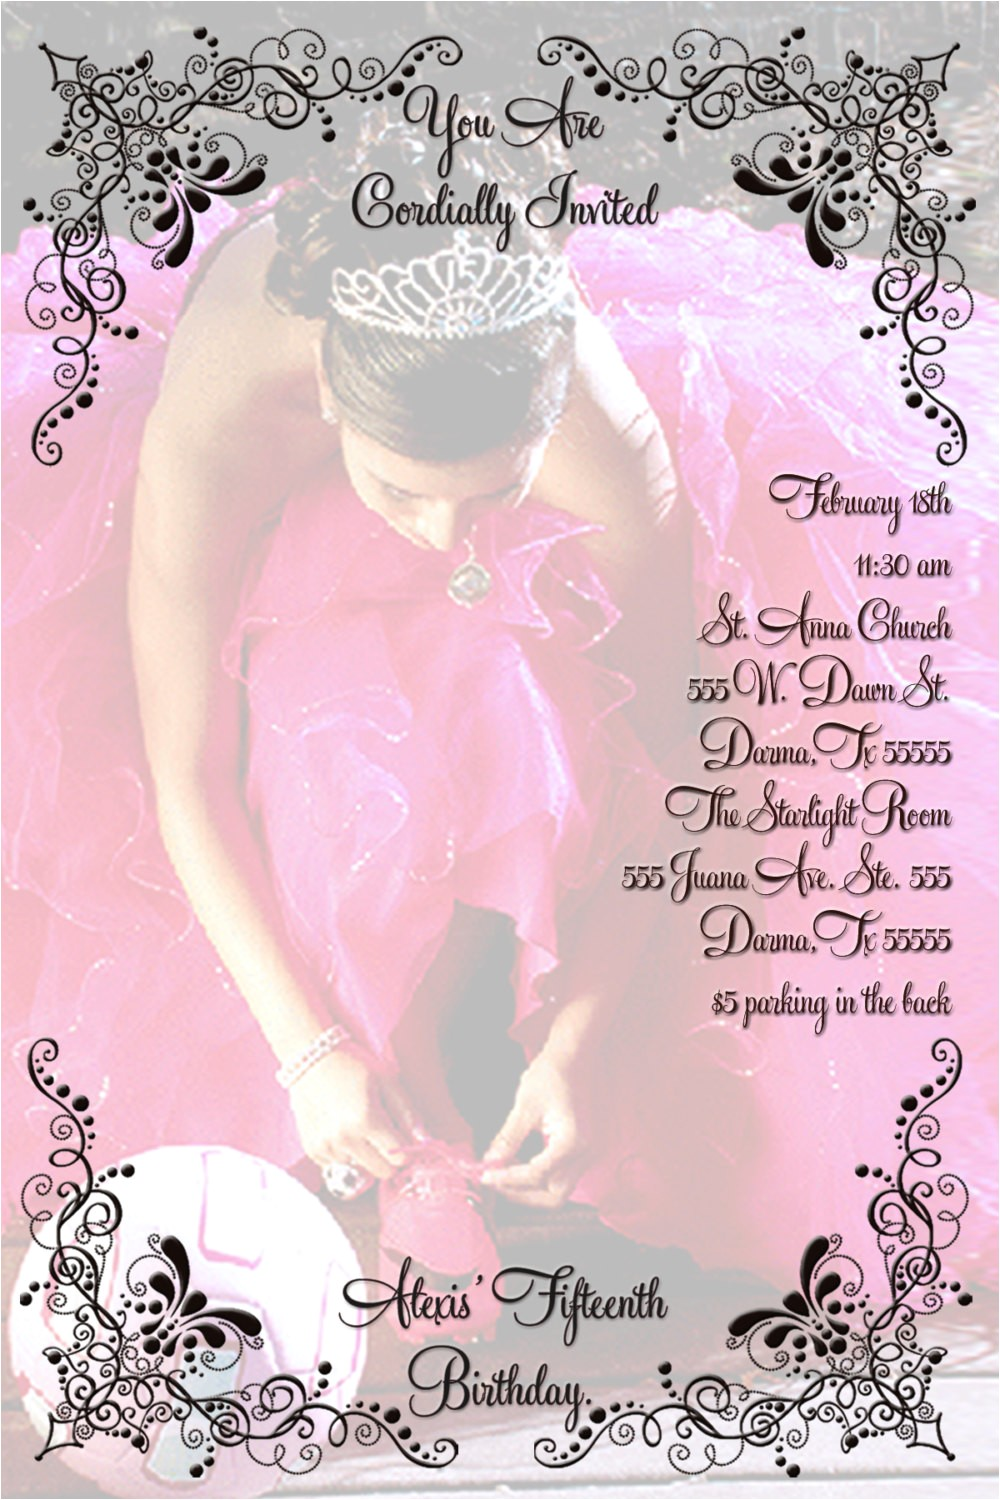 quinceanera invitation personalized with